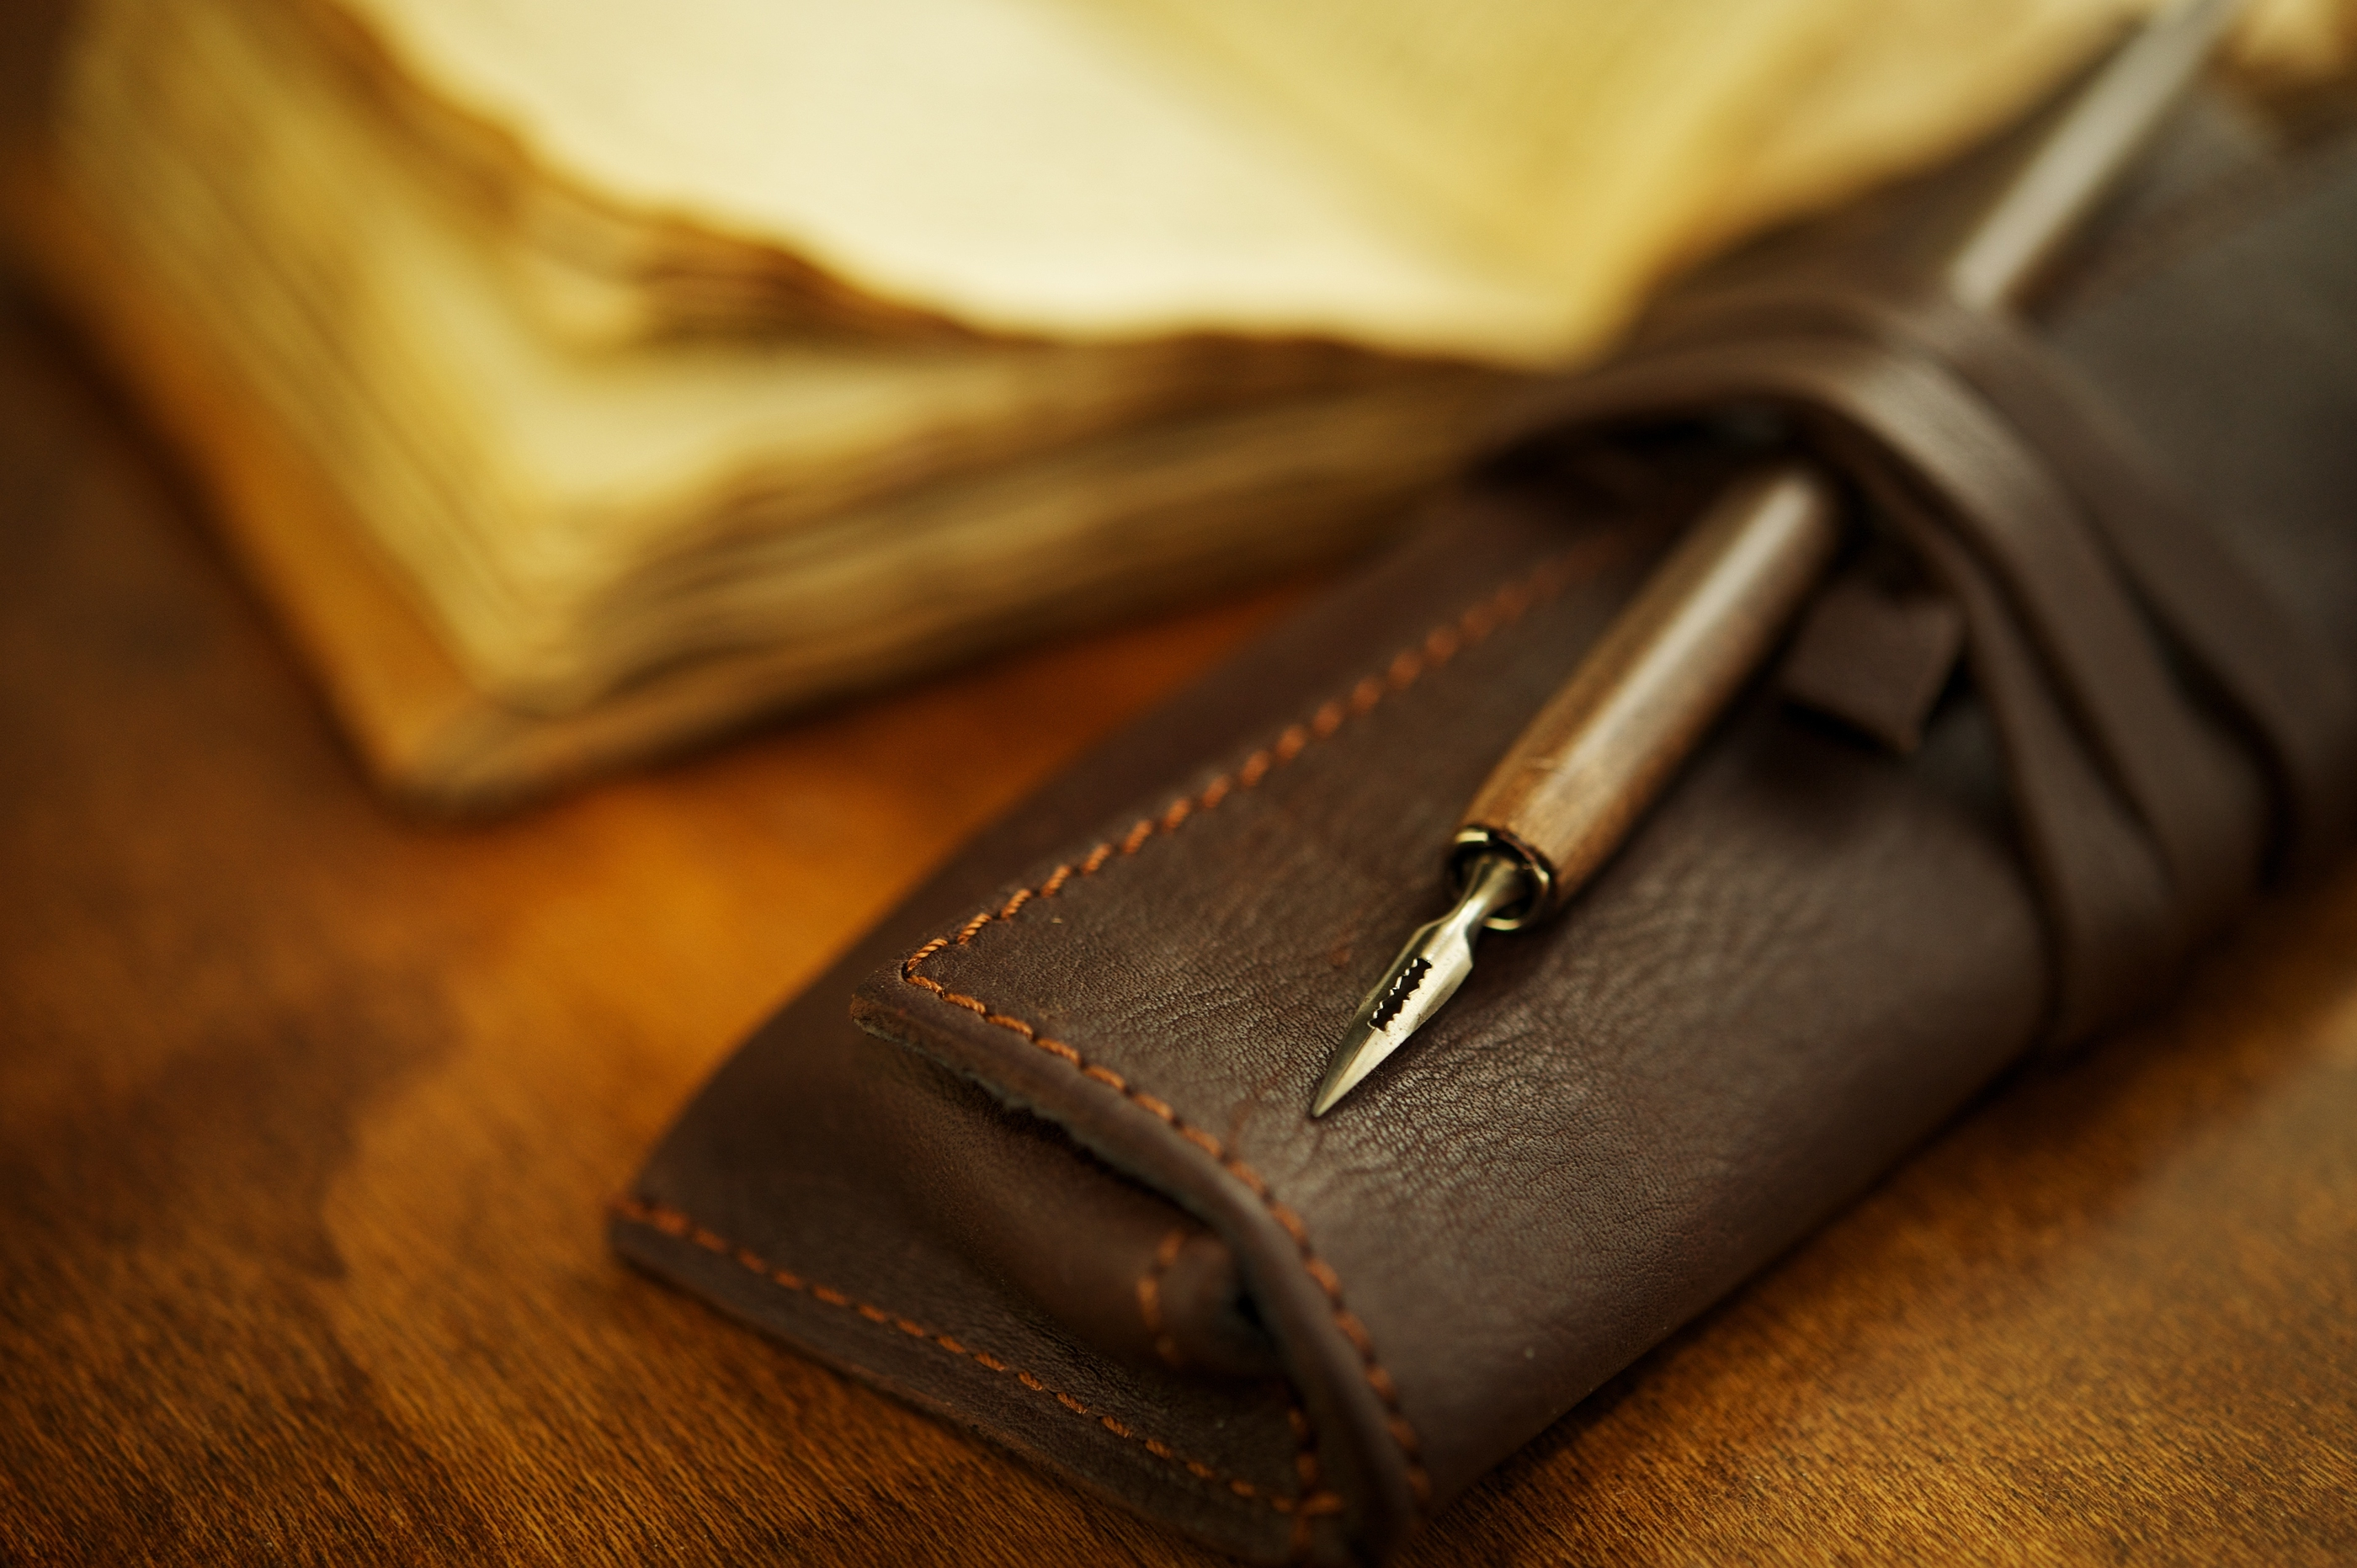 Quill pen near a vintage book.